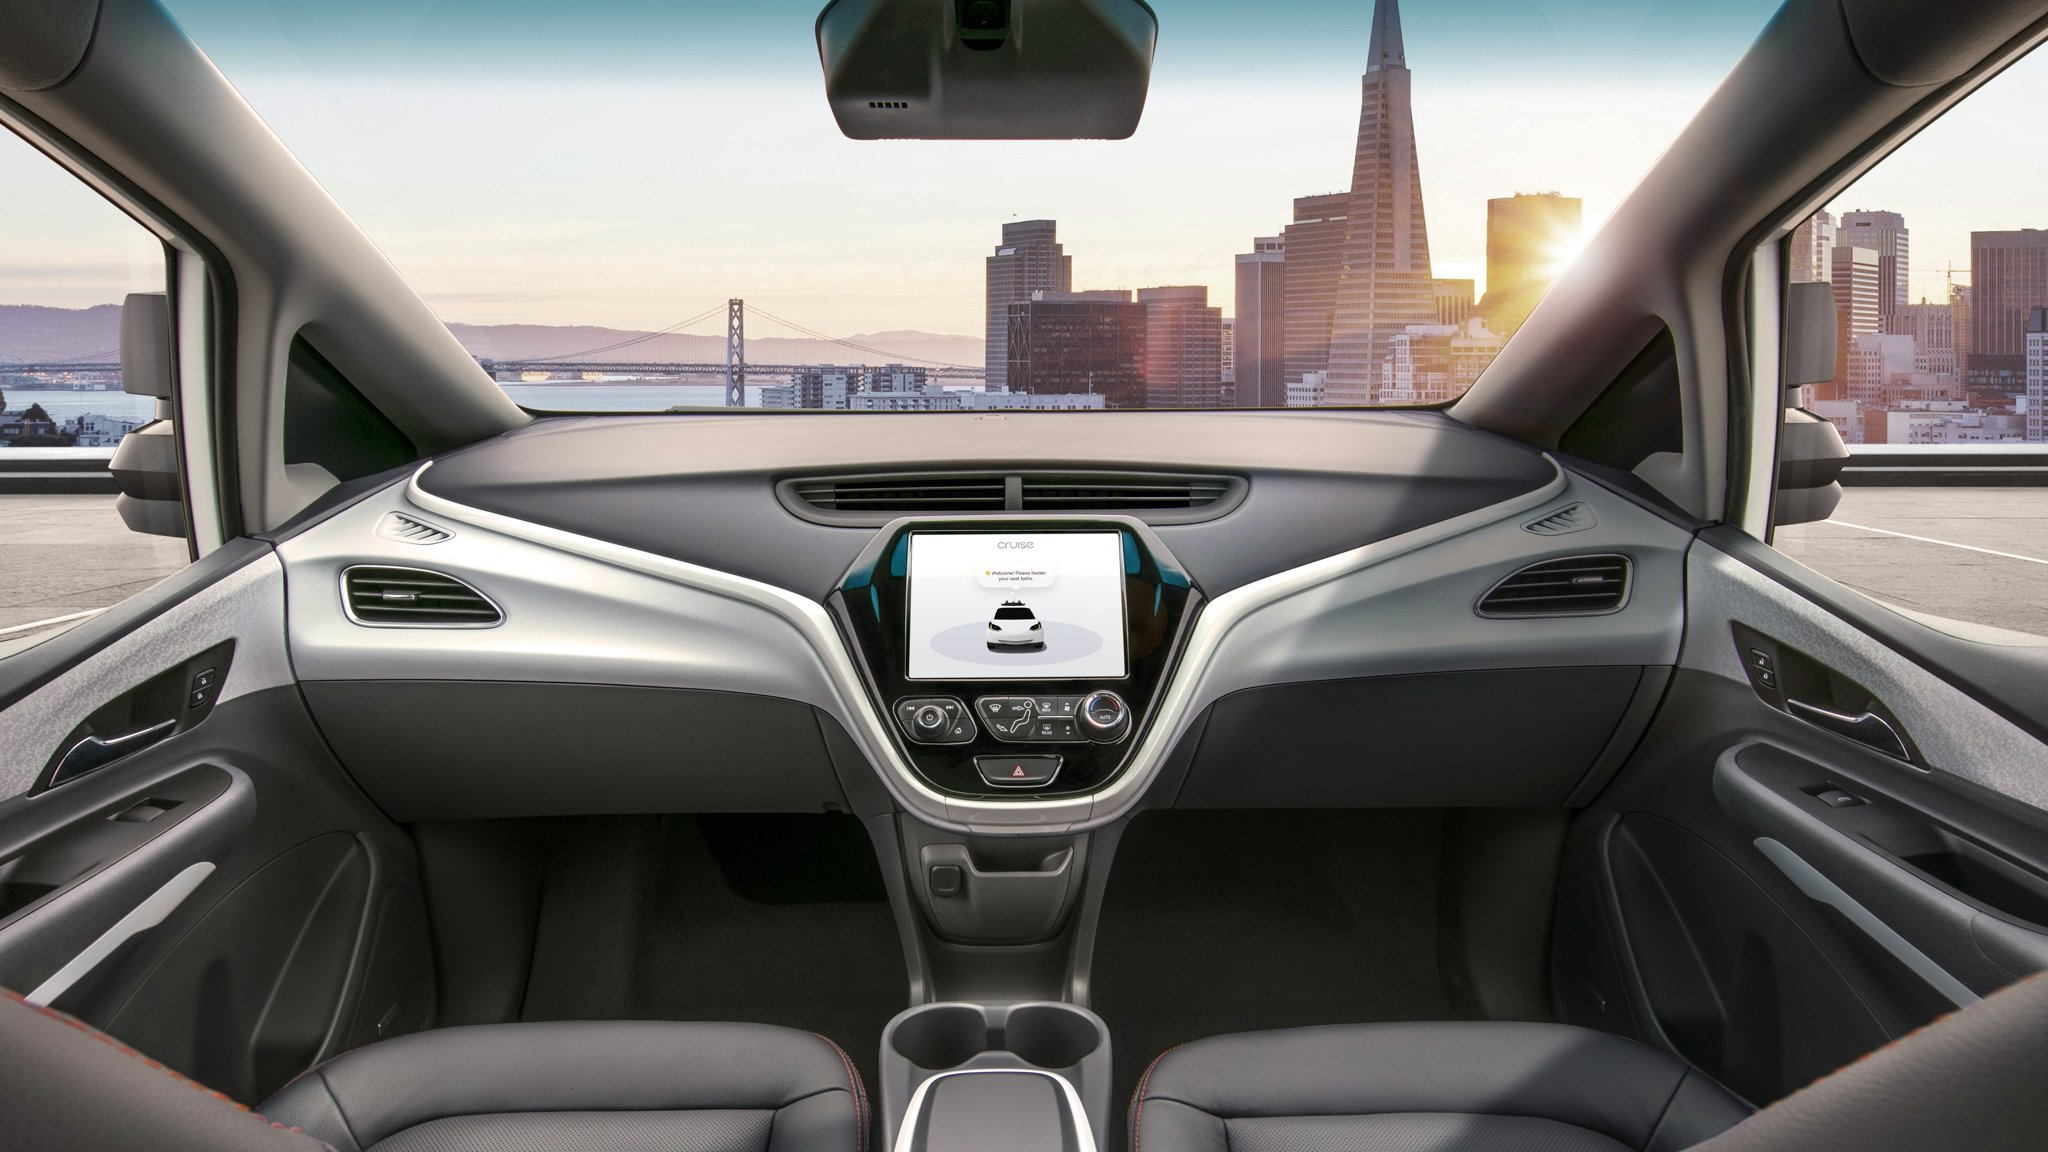 General Motors reveals images of car without driver controls